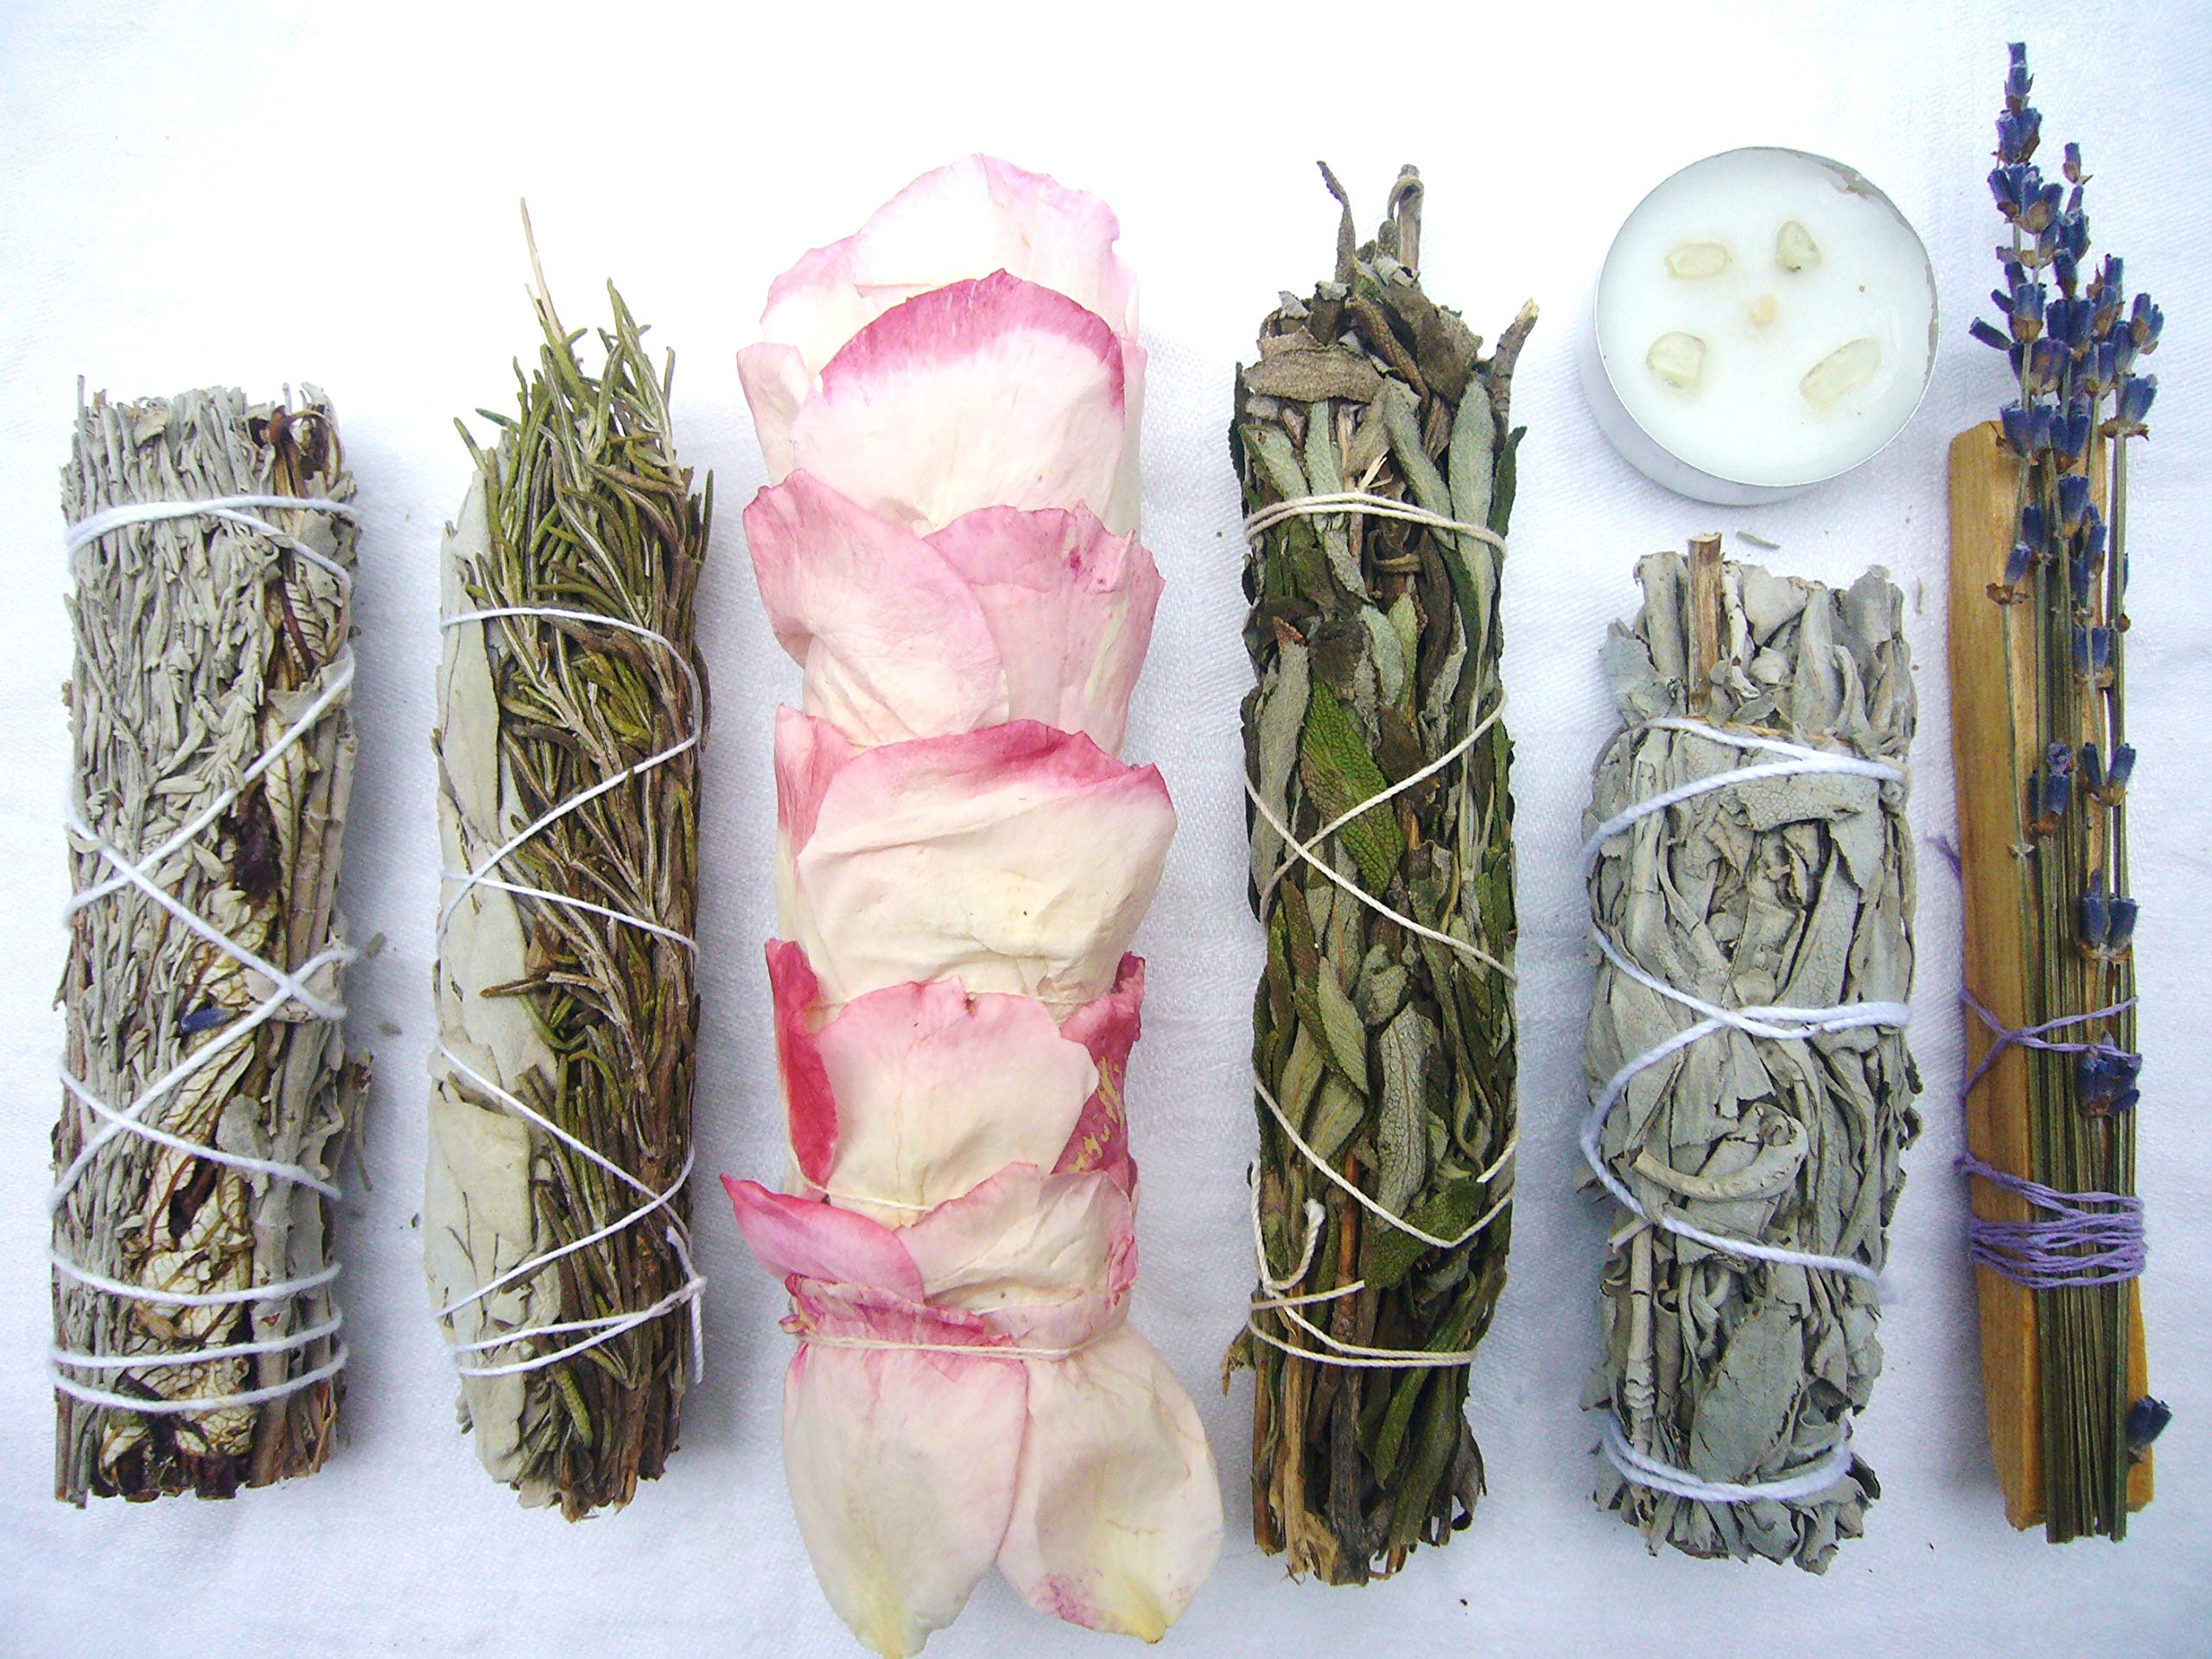 L'AMOUR yes! Luxury Smudge Kit | Rose White Sage, Rosemary, Lavender Smudge Stick, Yerba Santa & Blue Sage, White Sage, Palo Santo, Crystal Candle | Home Cleansing, Blessing, Manifesting, Rituals by L'AMOUR yes! (Image #1)